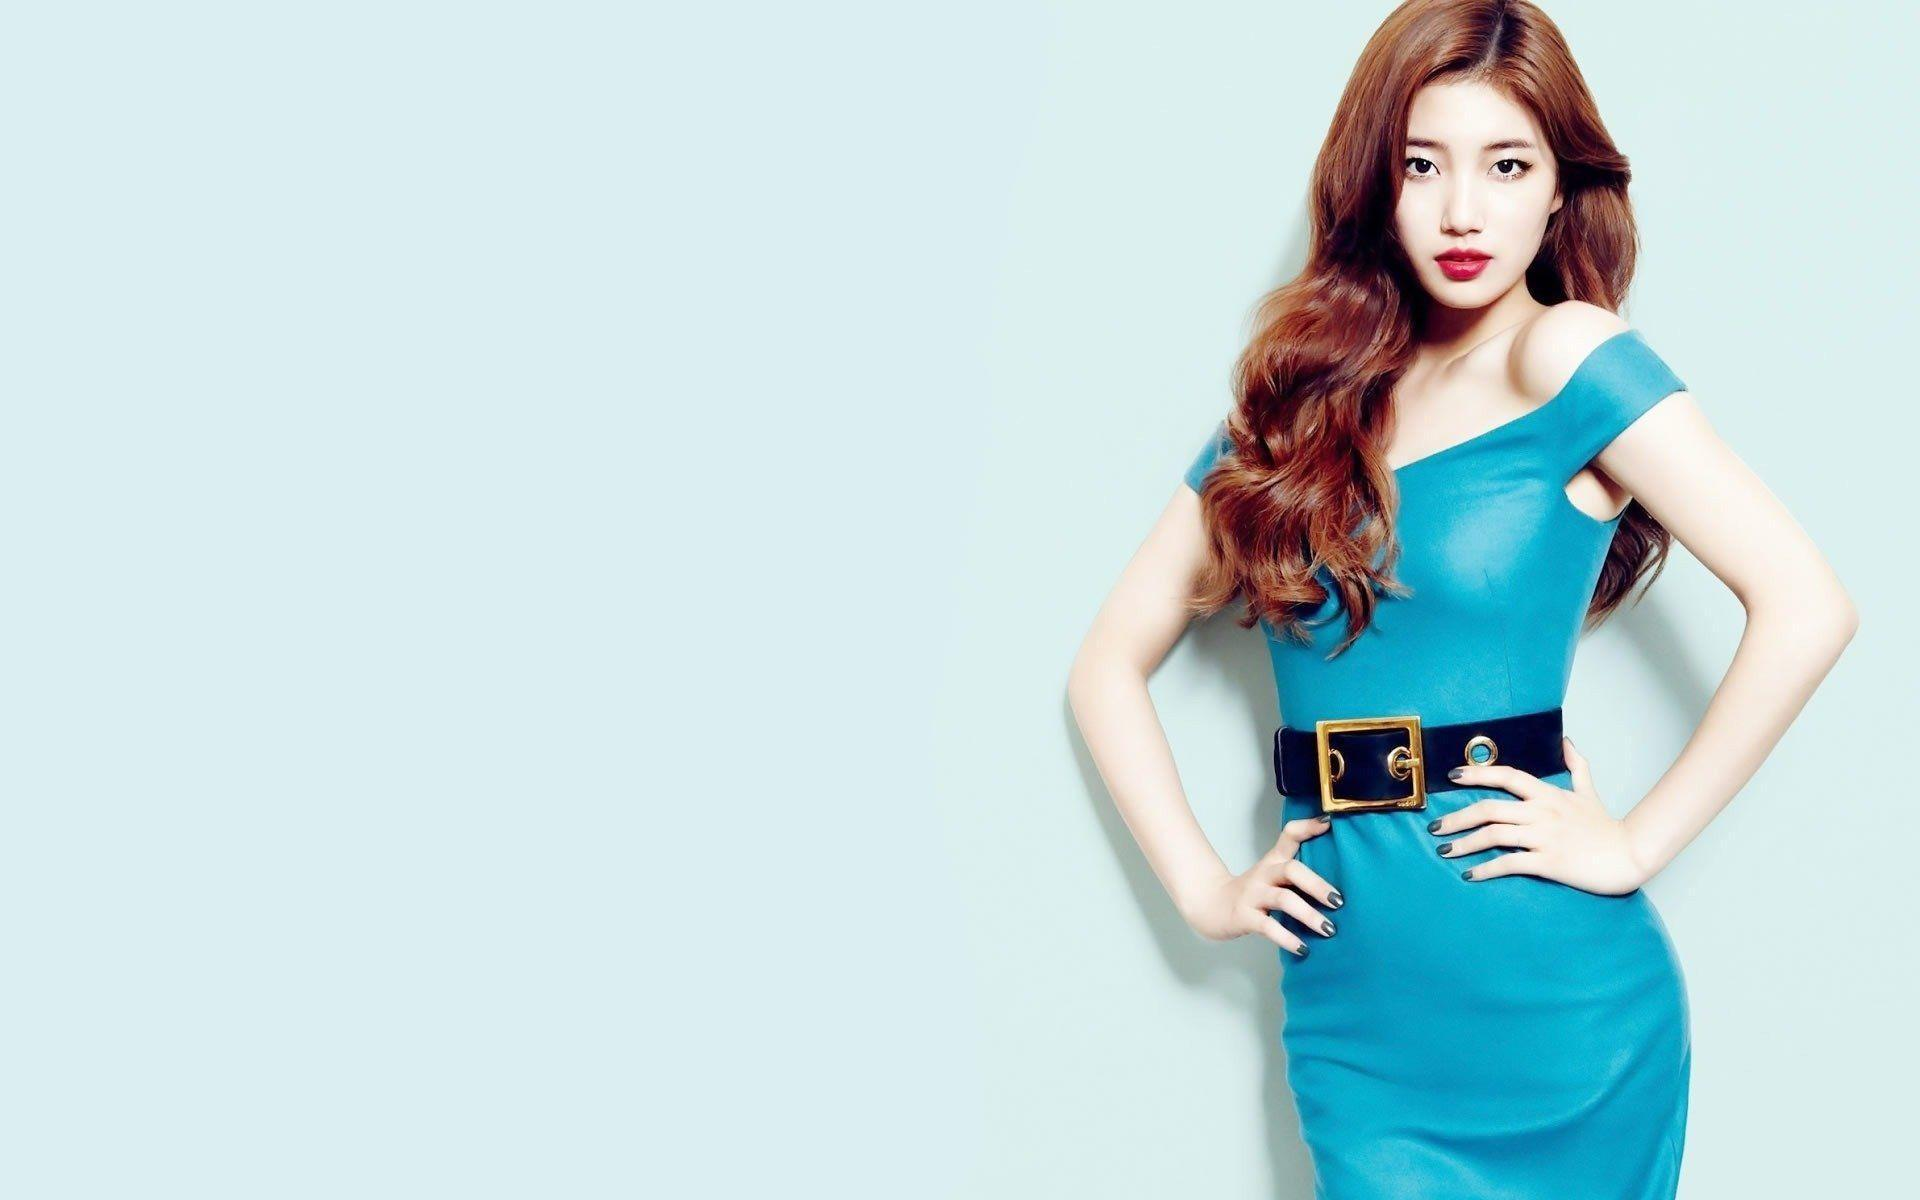 Suzy Computer Wallpapers, Desktop Backgrounds | 1920x1200 | ID:465102